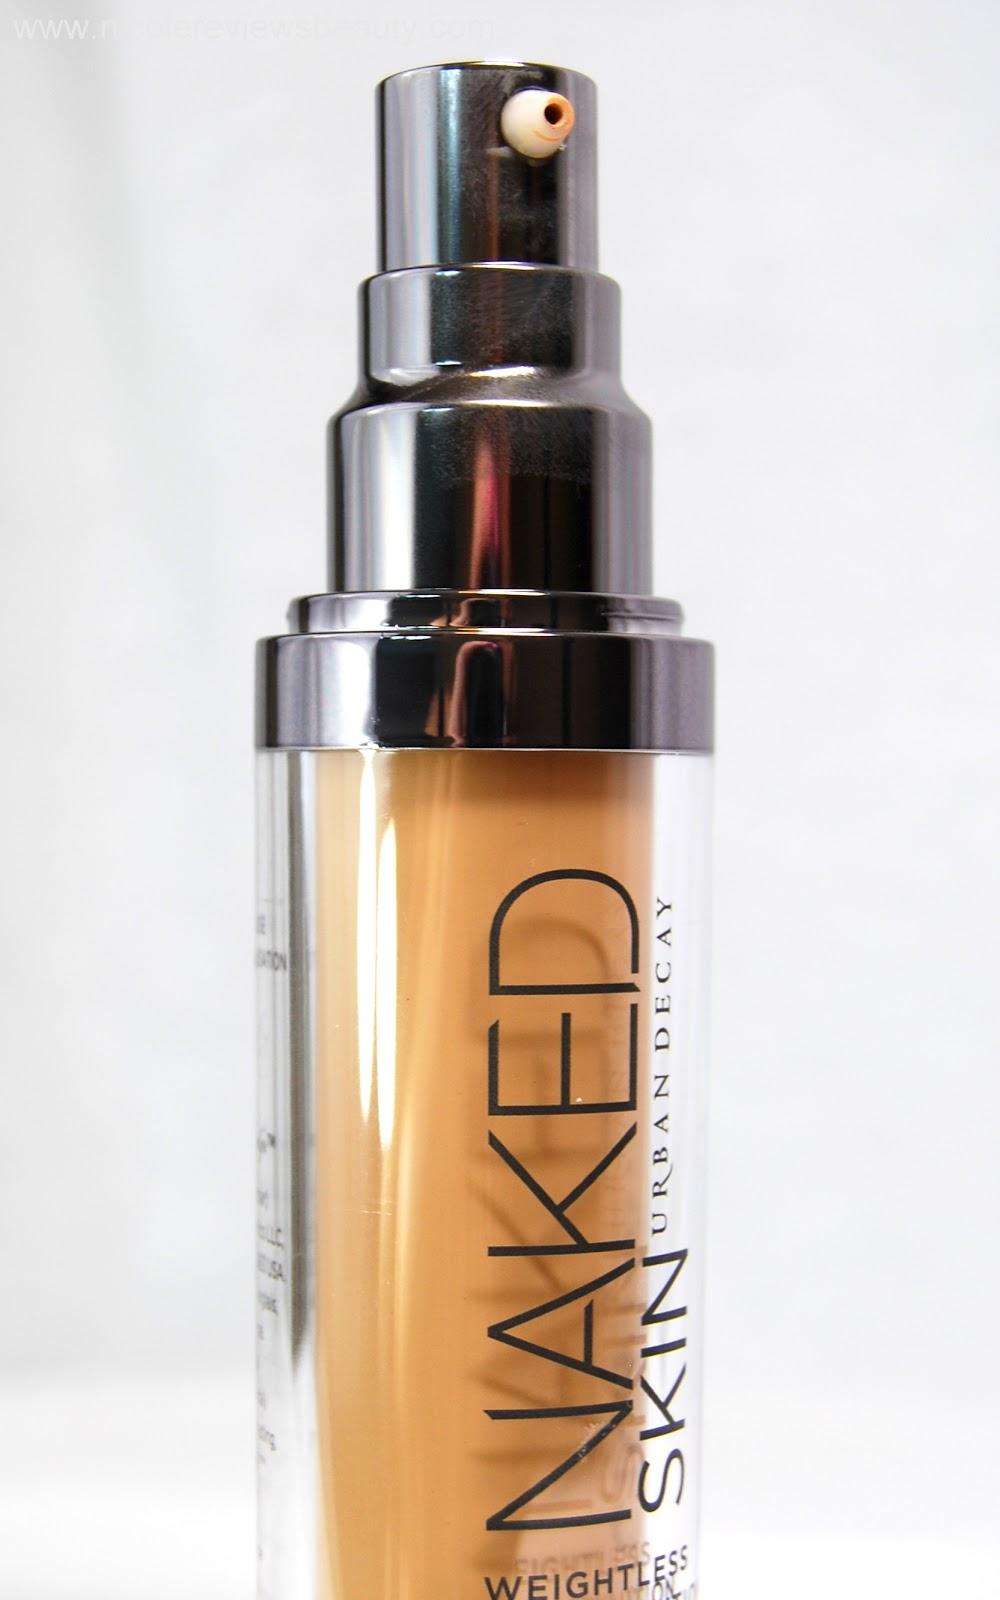 Urban Decay New Zealand - Naked Skin Weightless Ultra